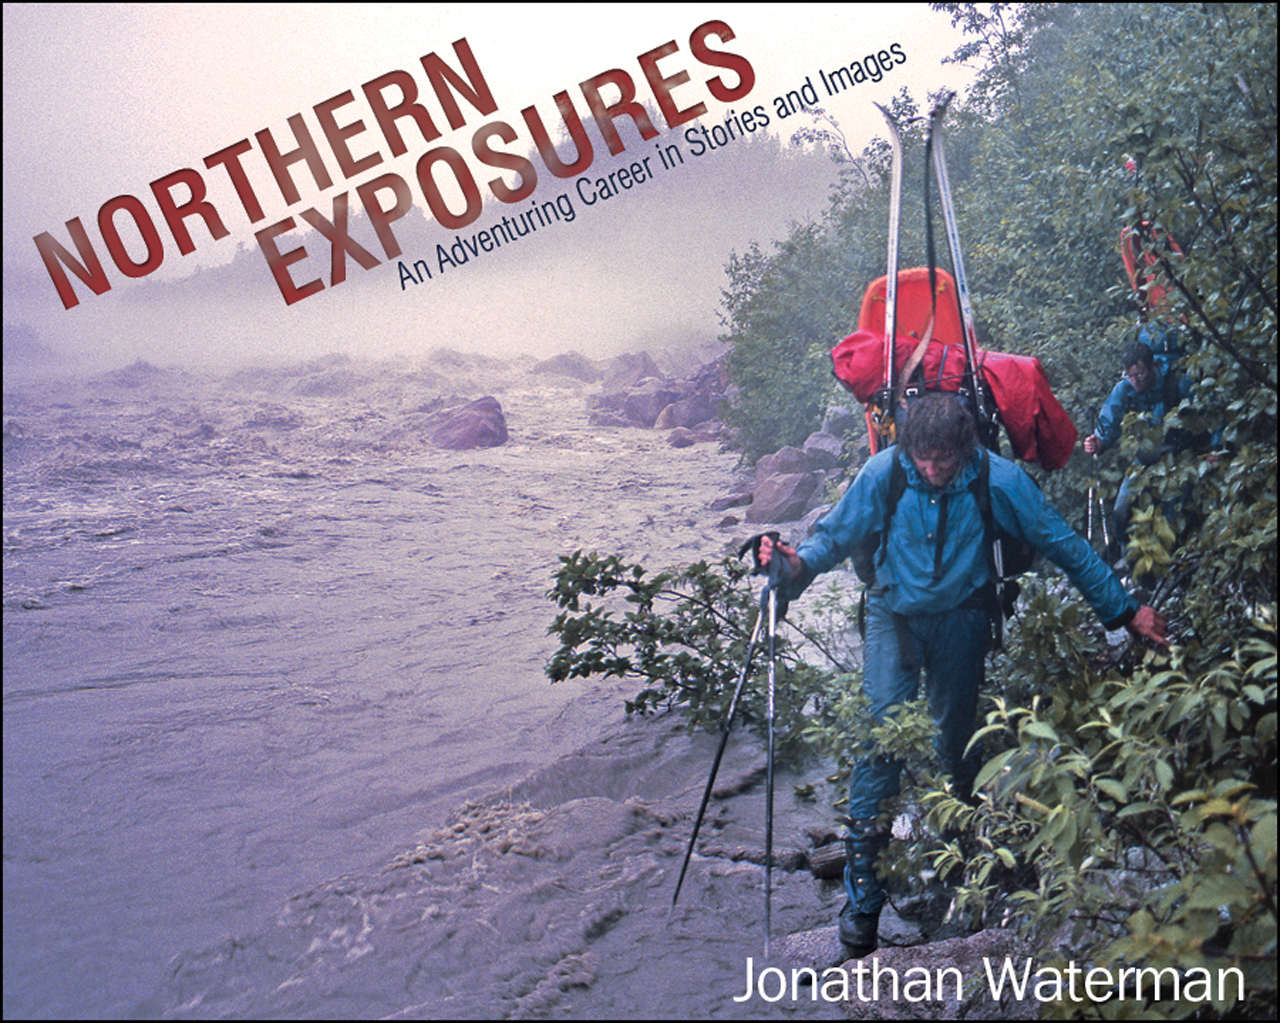 Northern Exposures: An Adventuring Career in Stories and Images